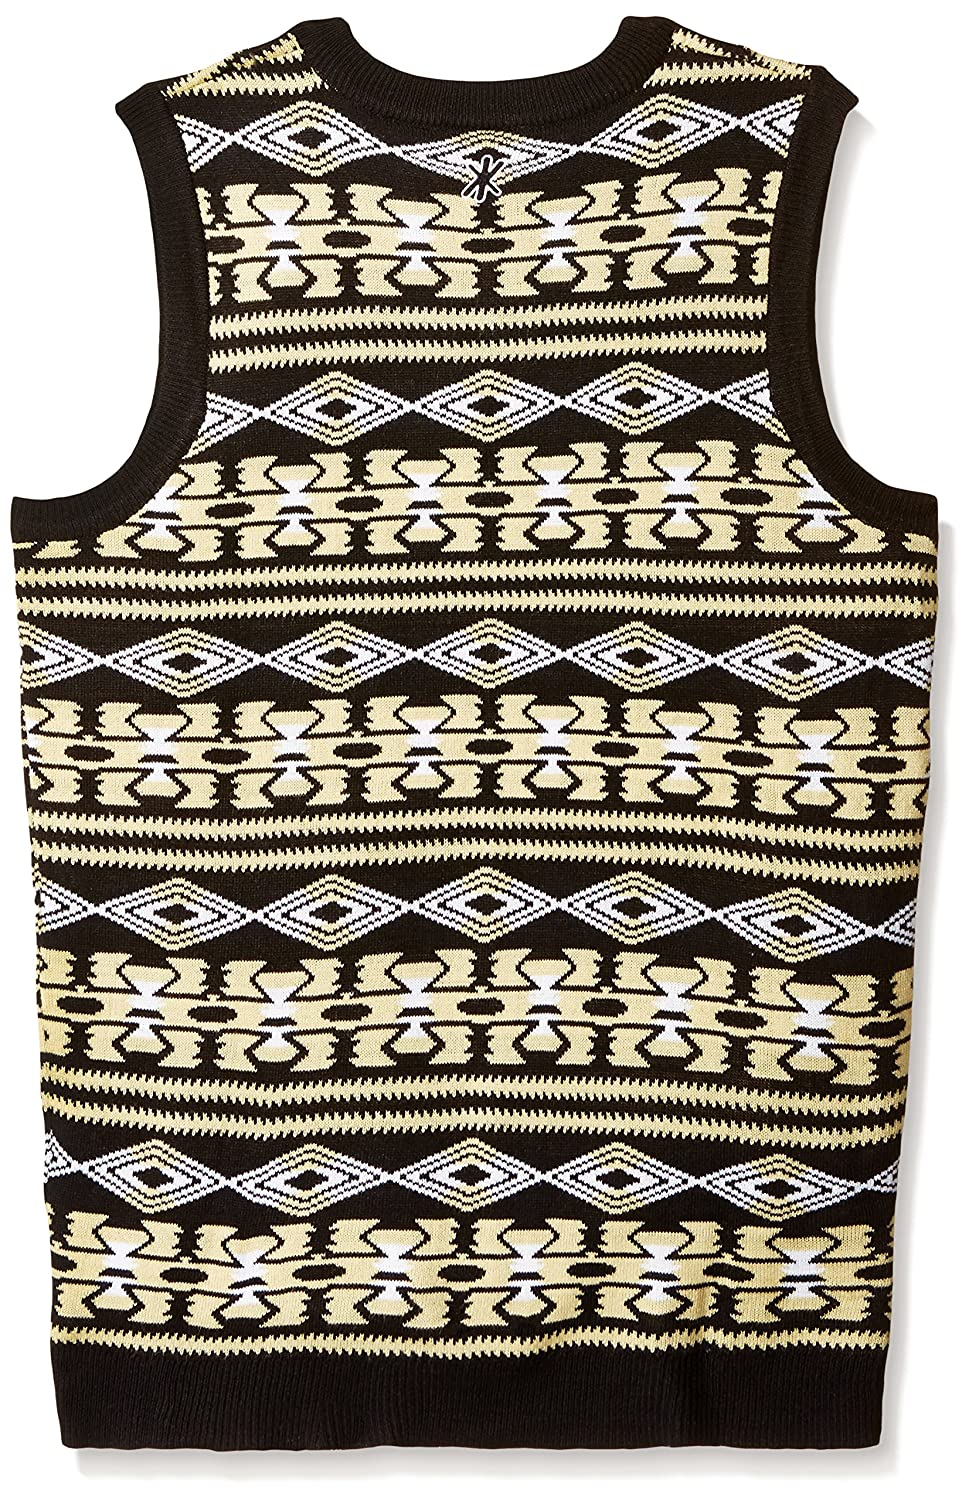 847fafe39 Klew Buffalo Bills Mens NFL Aztec Print Ugly Sweater Vest Christmas gift  store